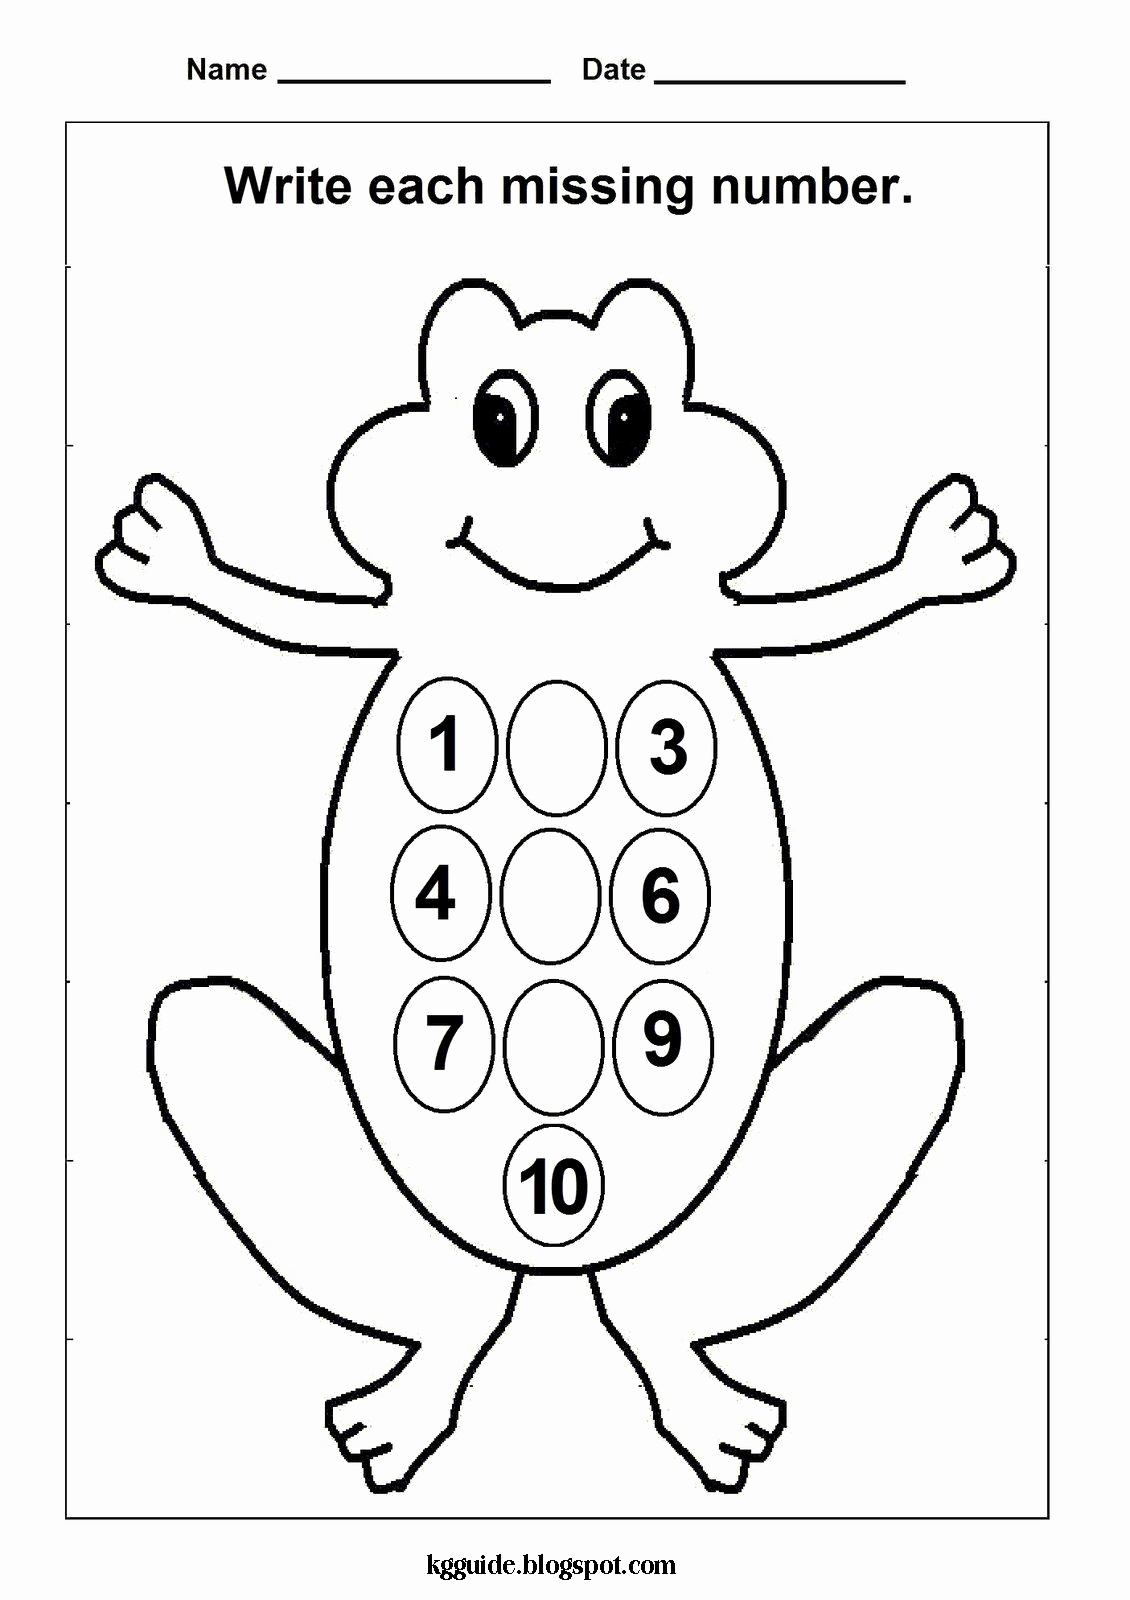 Missing Number Worksheets Kindergarten Elegant Kindergarten Worksheet Guide Clip Art Line